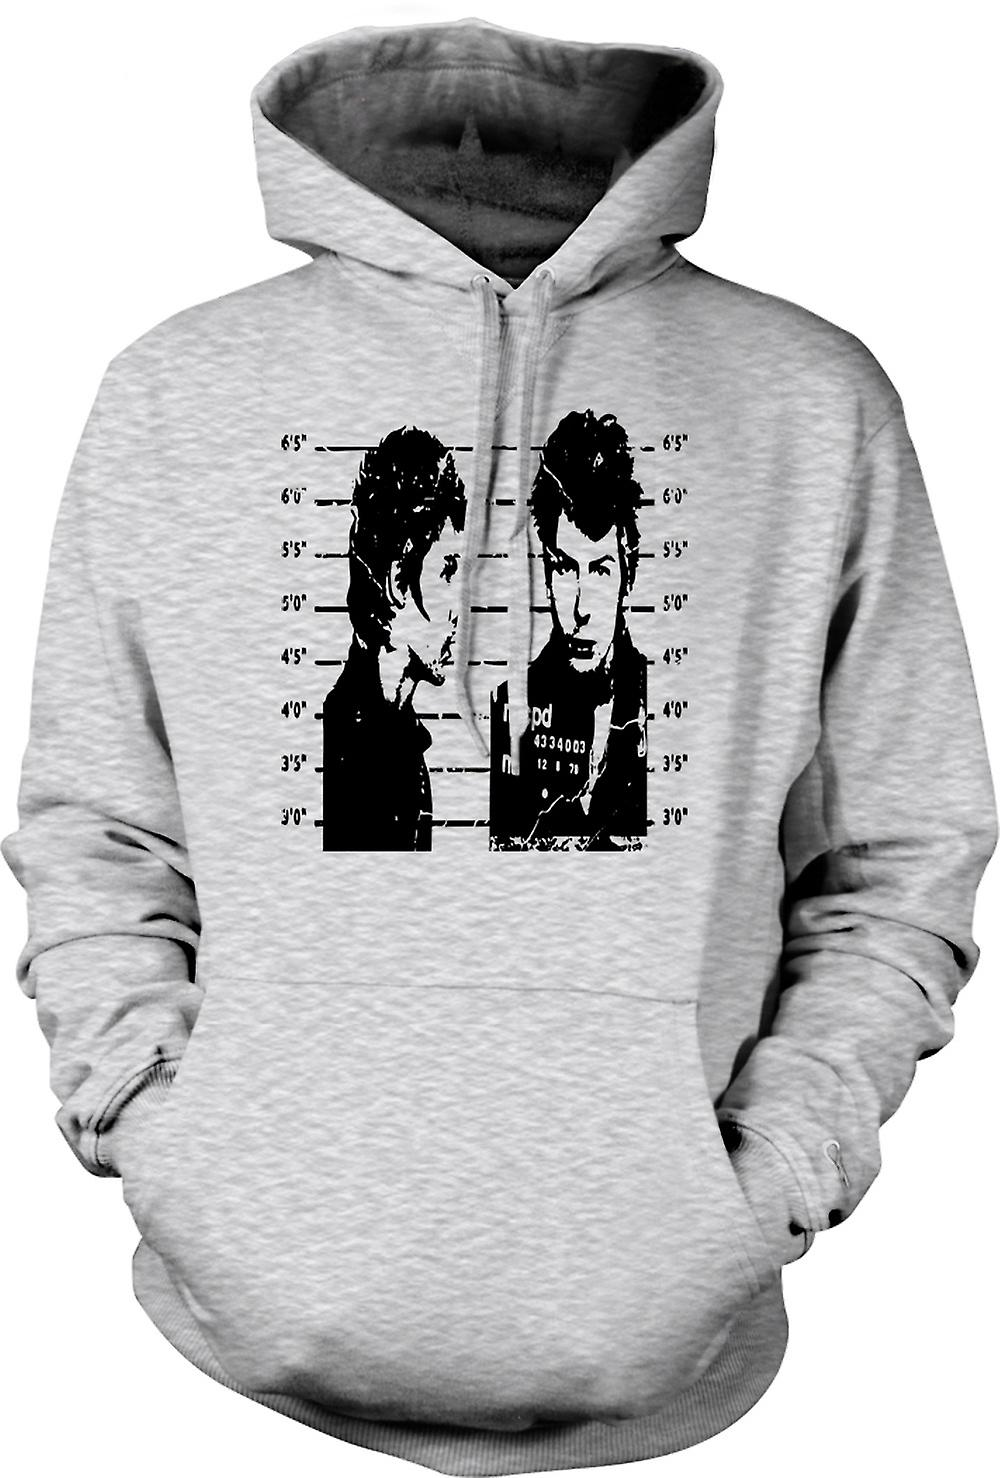 Mens-Hoodie - Sid Vicious - Sex Pistols - Becher Punk